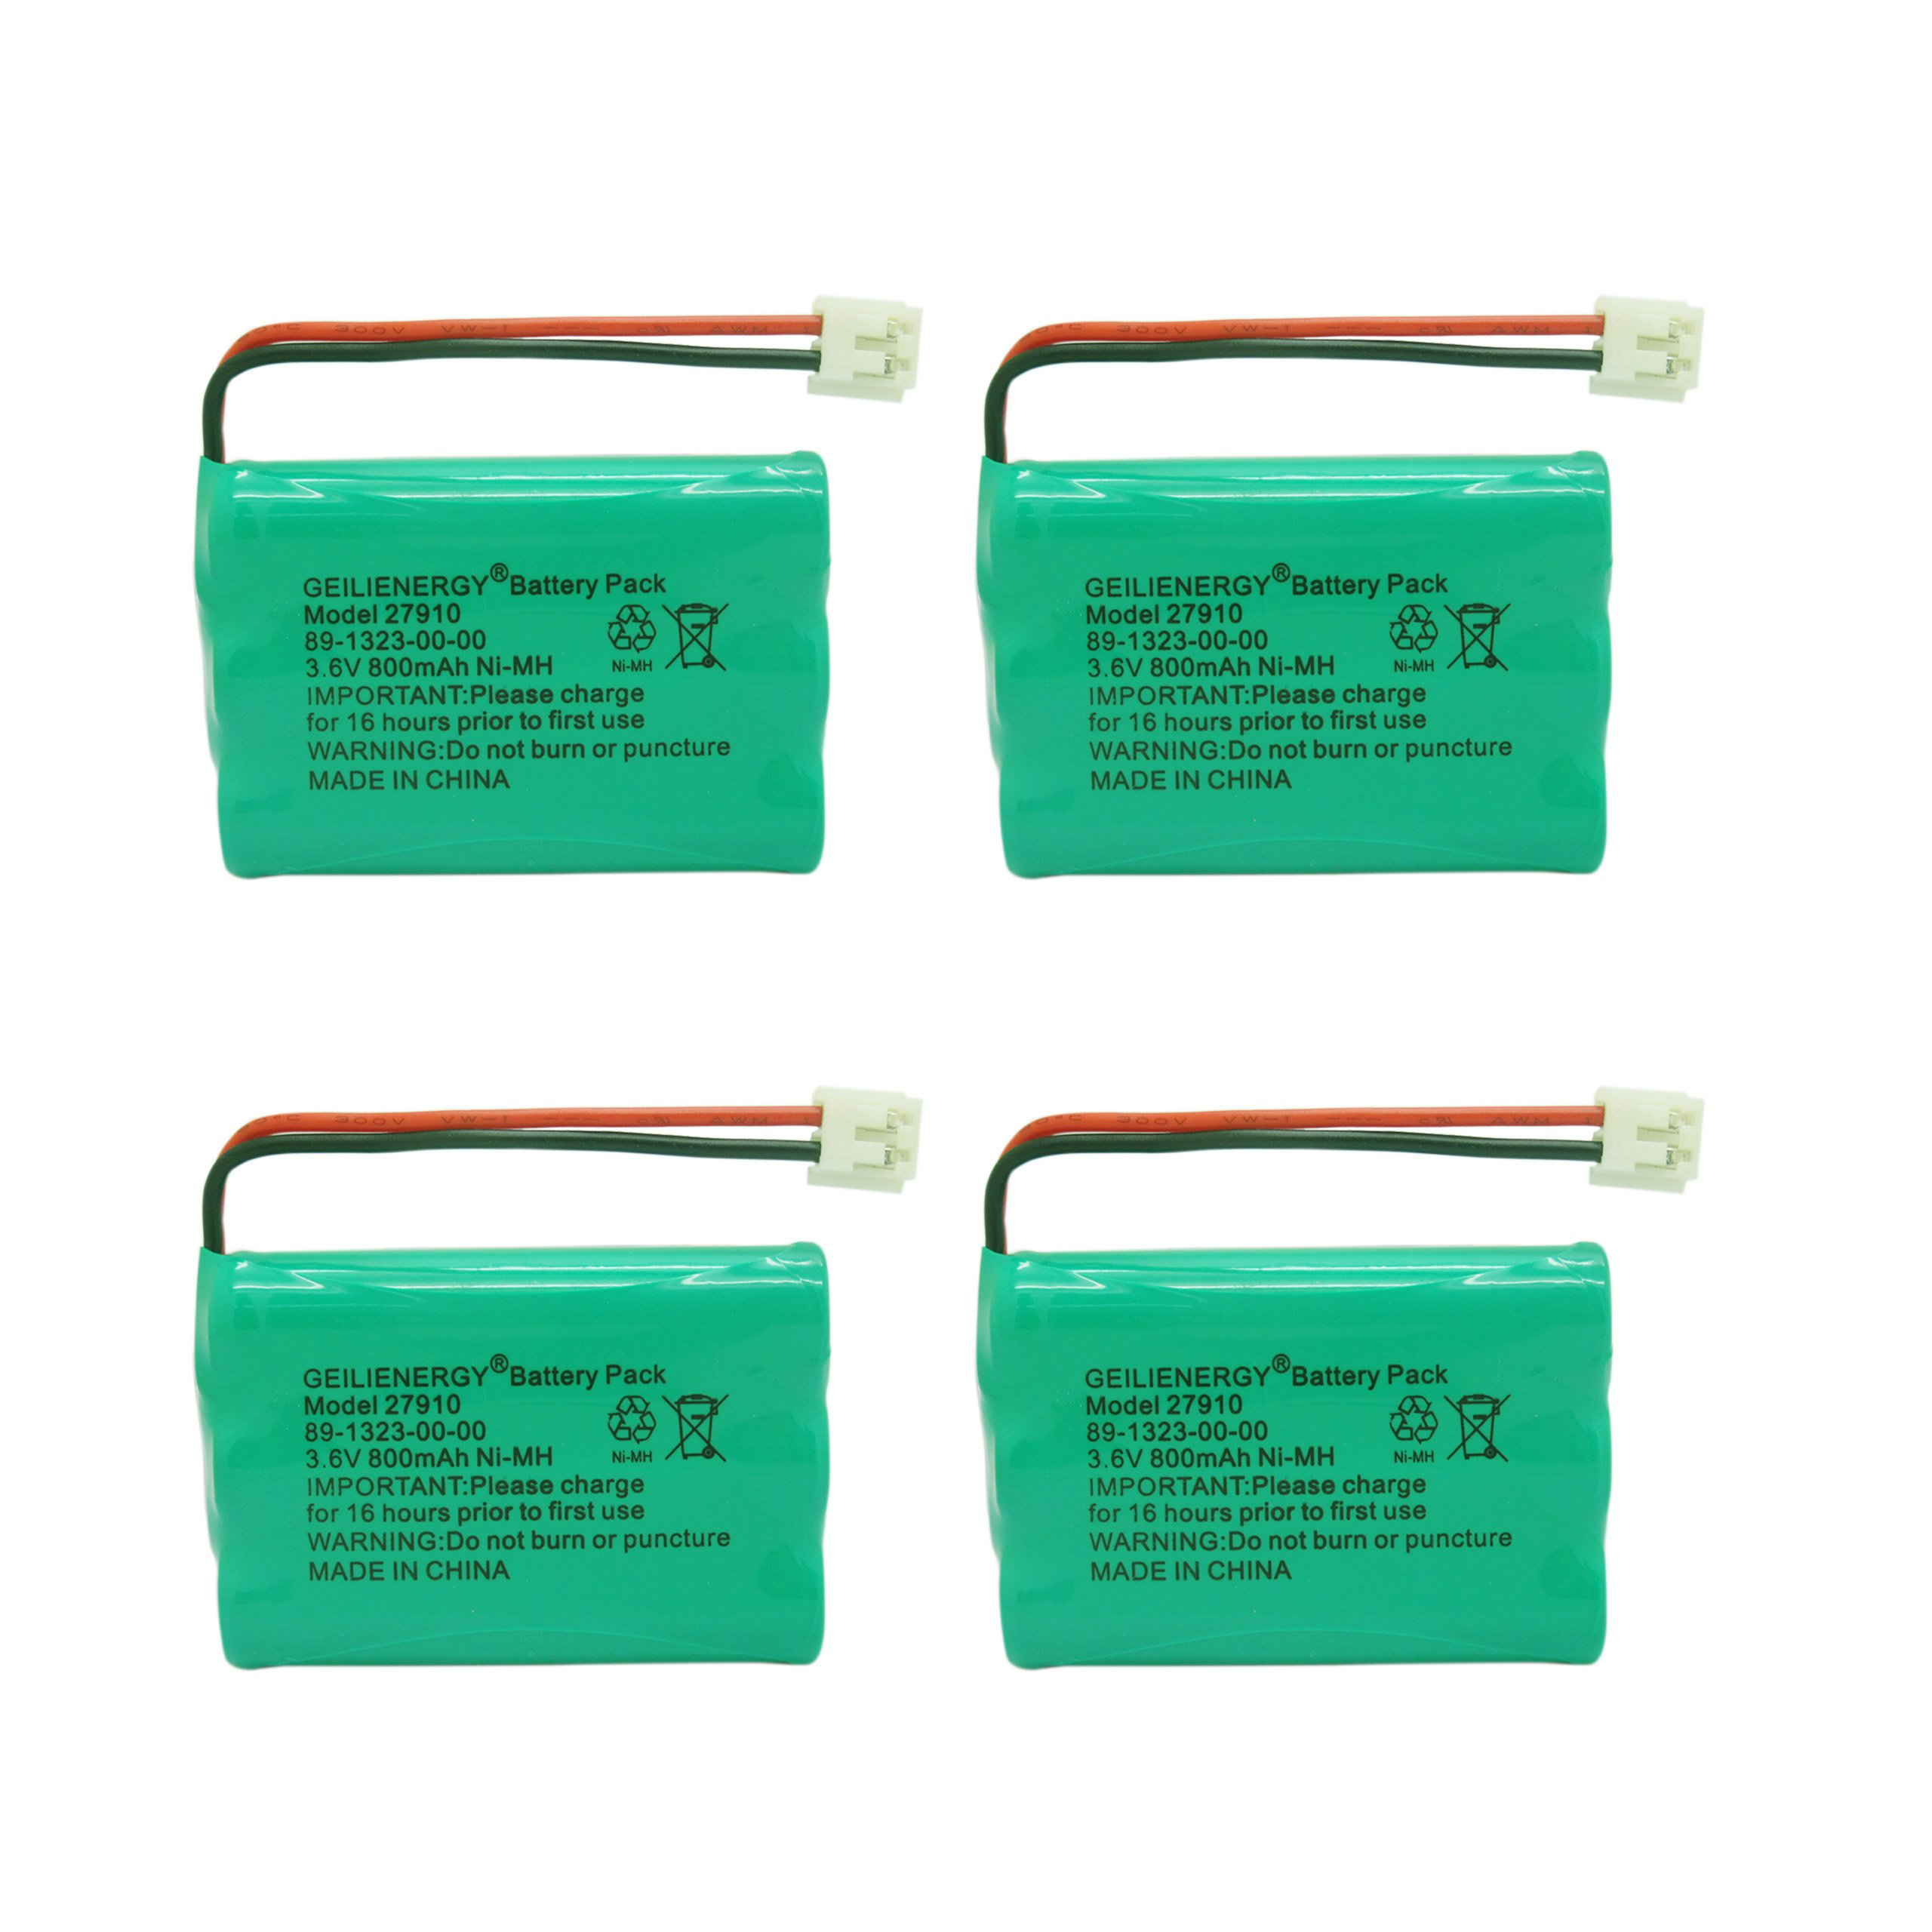 GEILIENERGY 27910 89-1323-00-00 Battery Compatible with Vtech I6725 mi6803 Motorola SD-7501 at&T E1112 E2801 TL72108 RadioShack 23-959 Cordless Phone (Pack of 4)